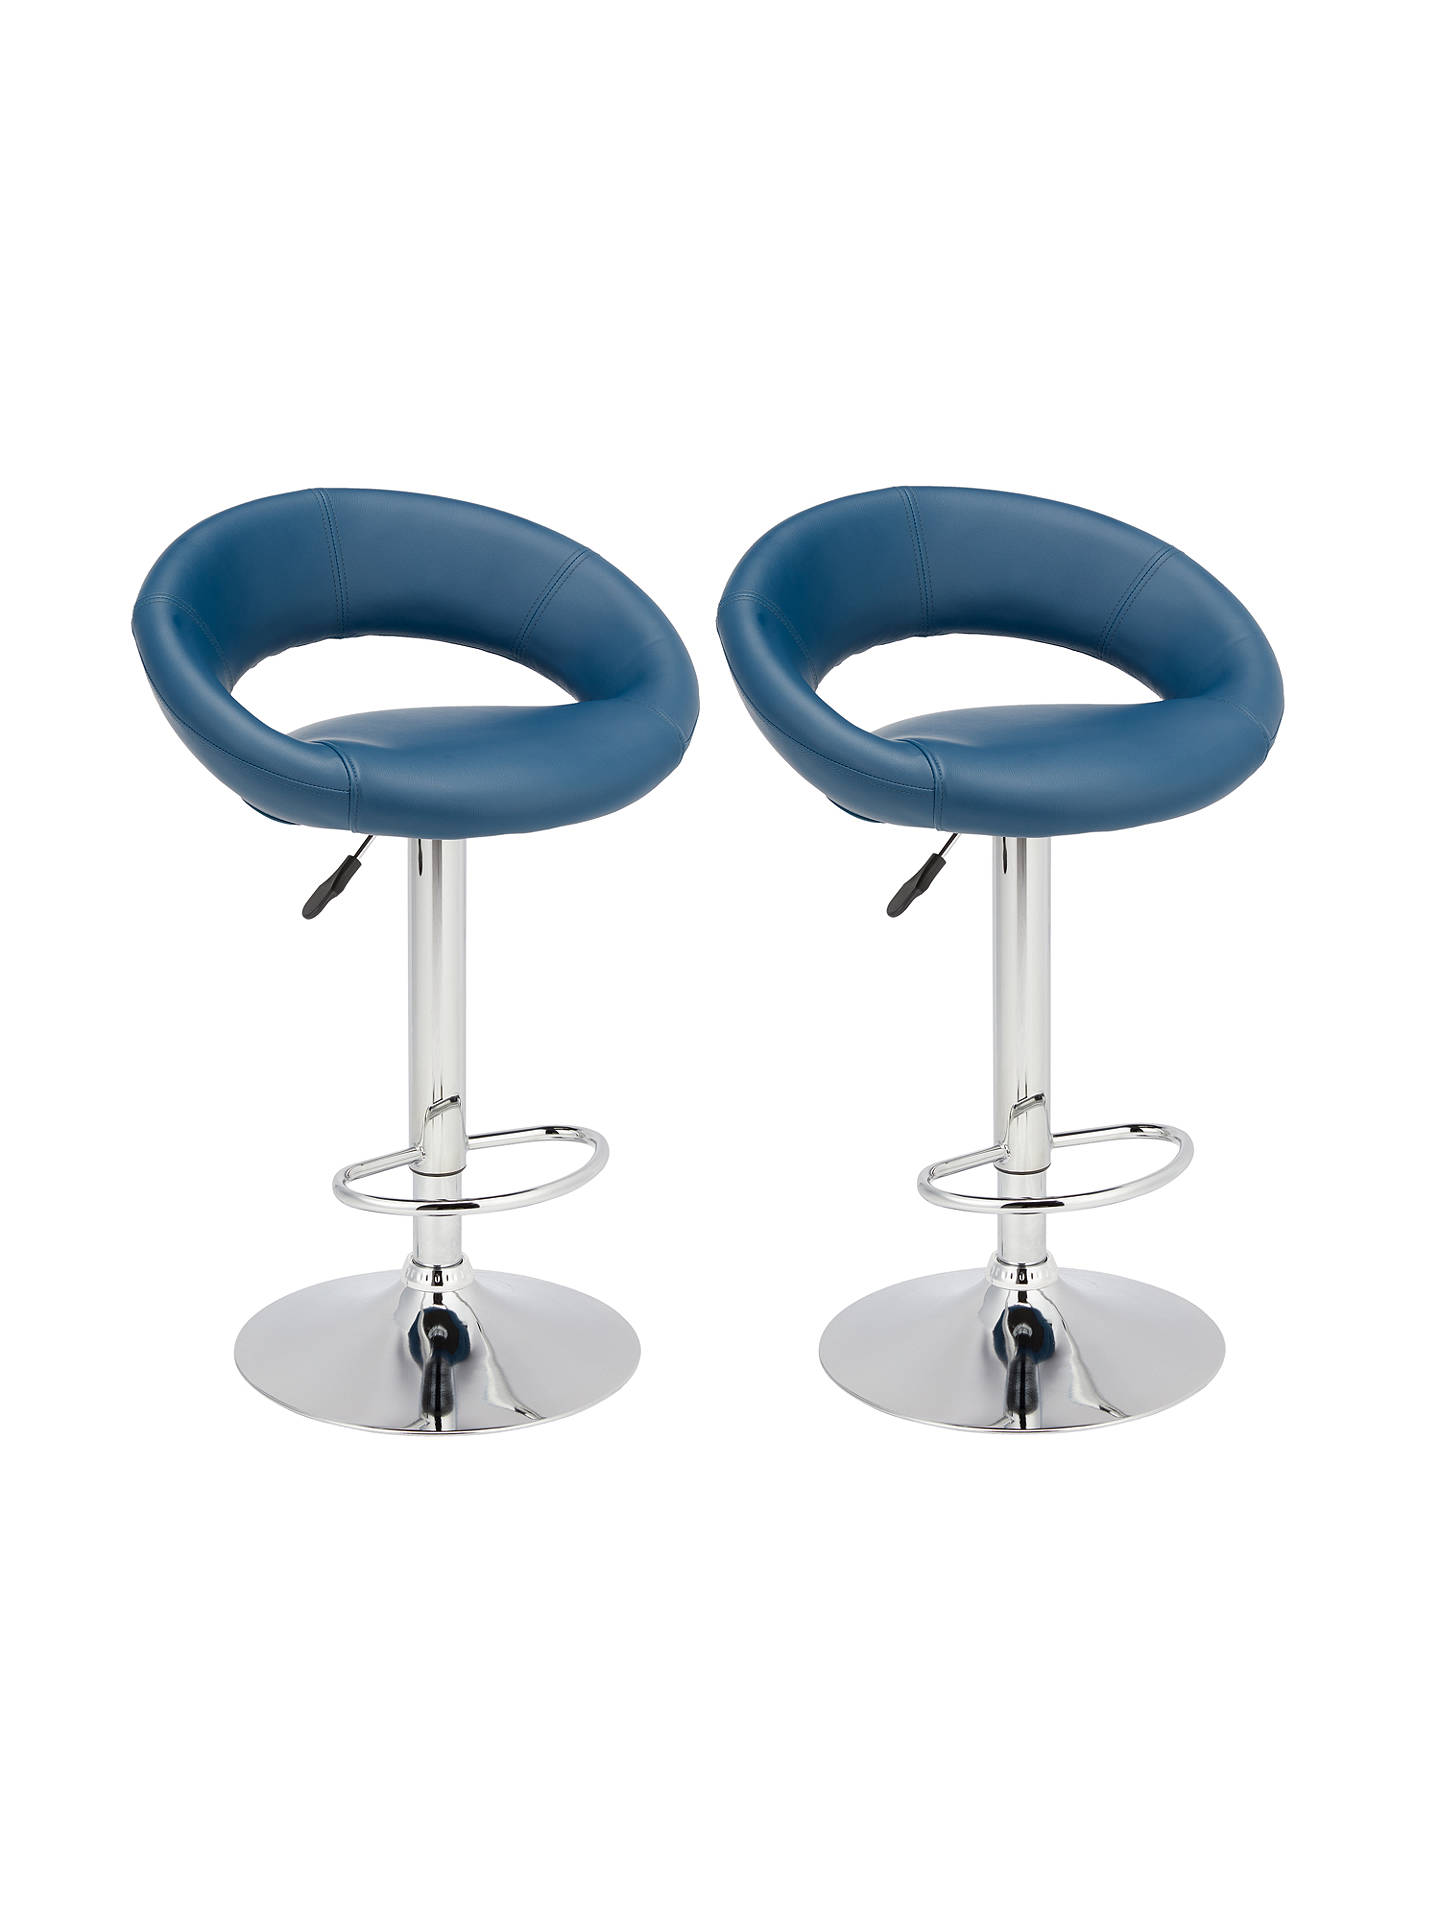 BuyJohn Lewis & Partners Oliver Bar Stools, Set of 2, Navy Online at johnlewis.com